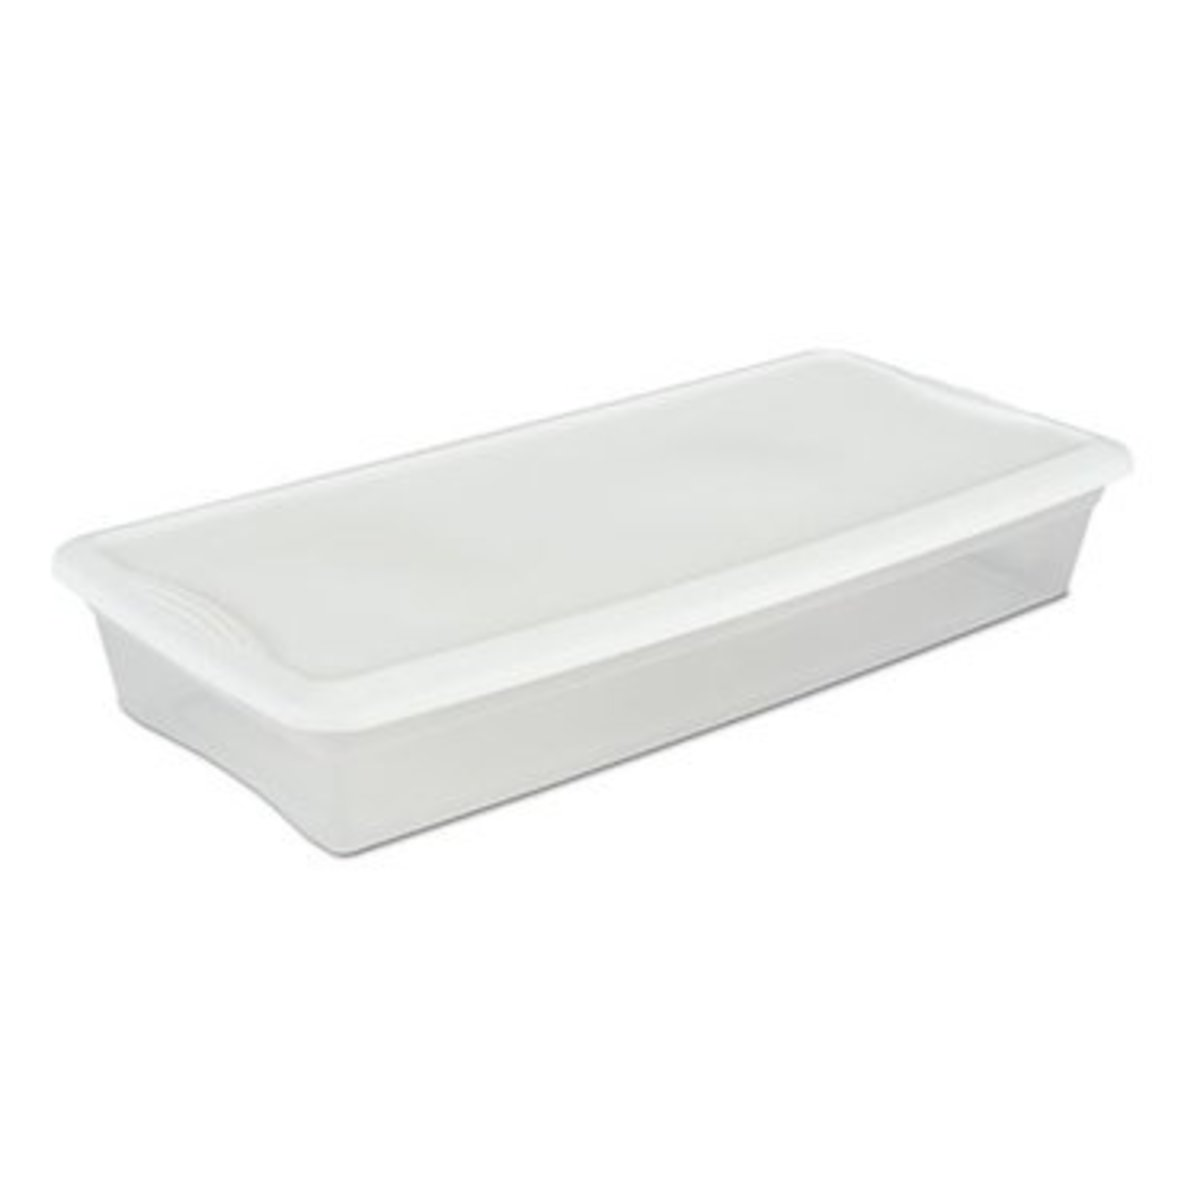 A 41 qt underbed tub,